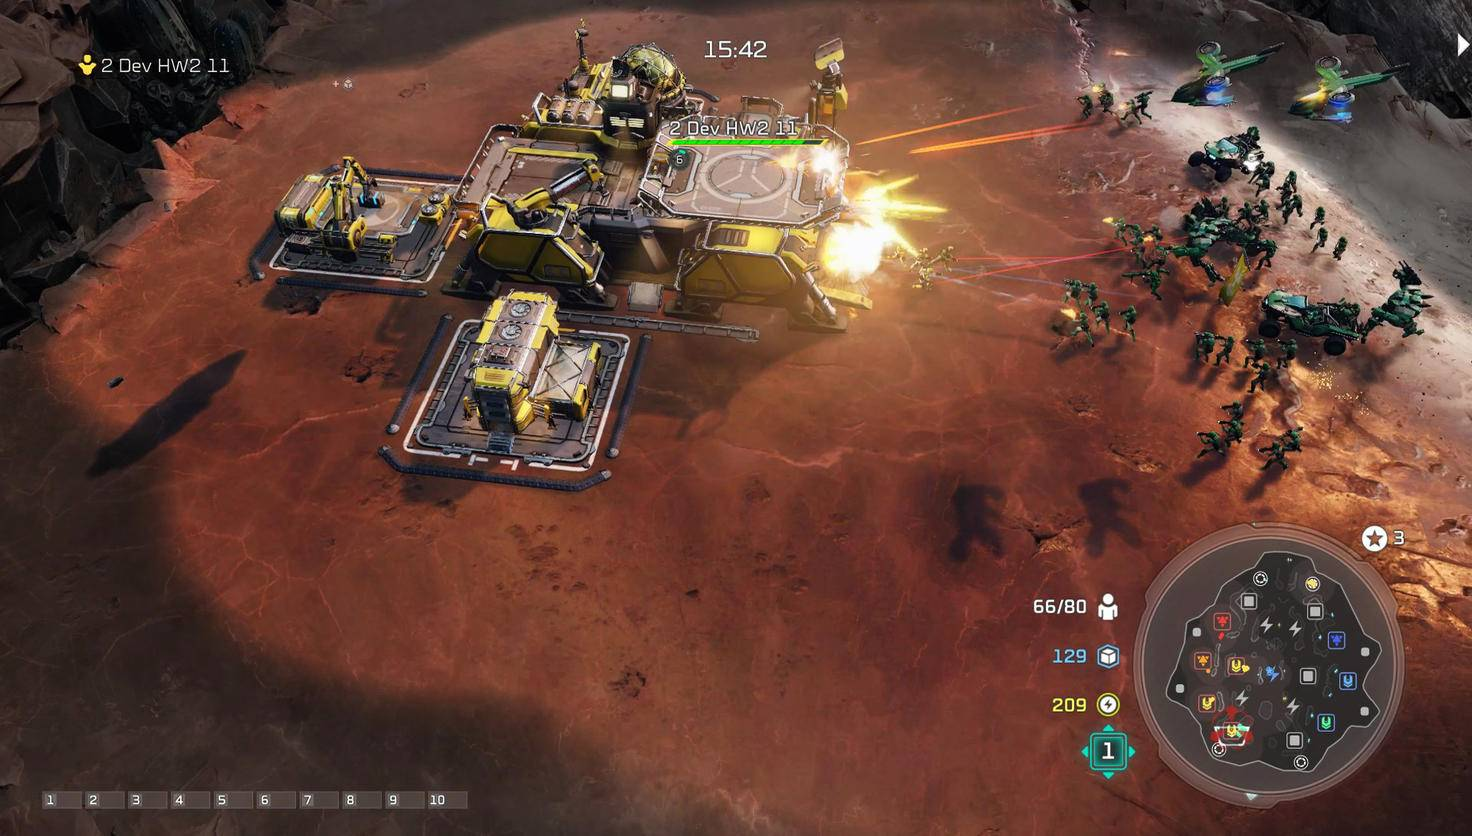 Halo Wars 2 Multiplayer